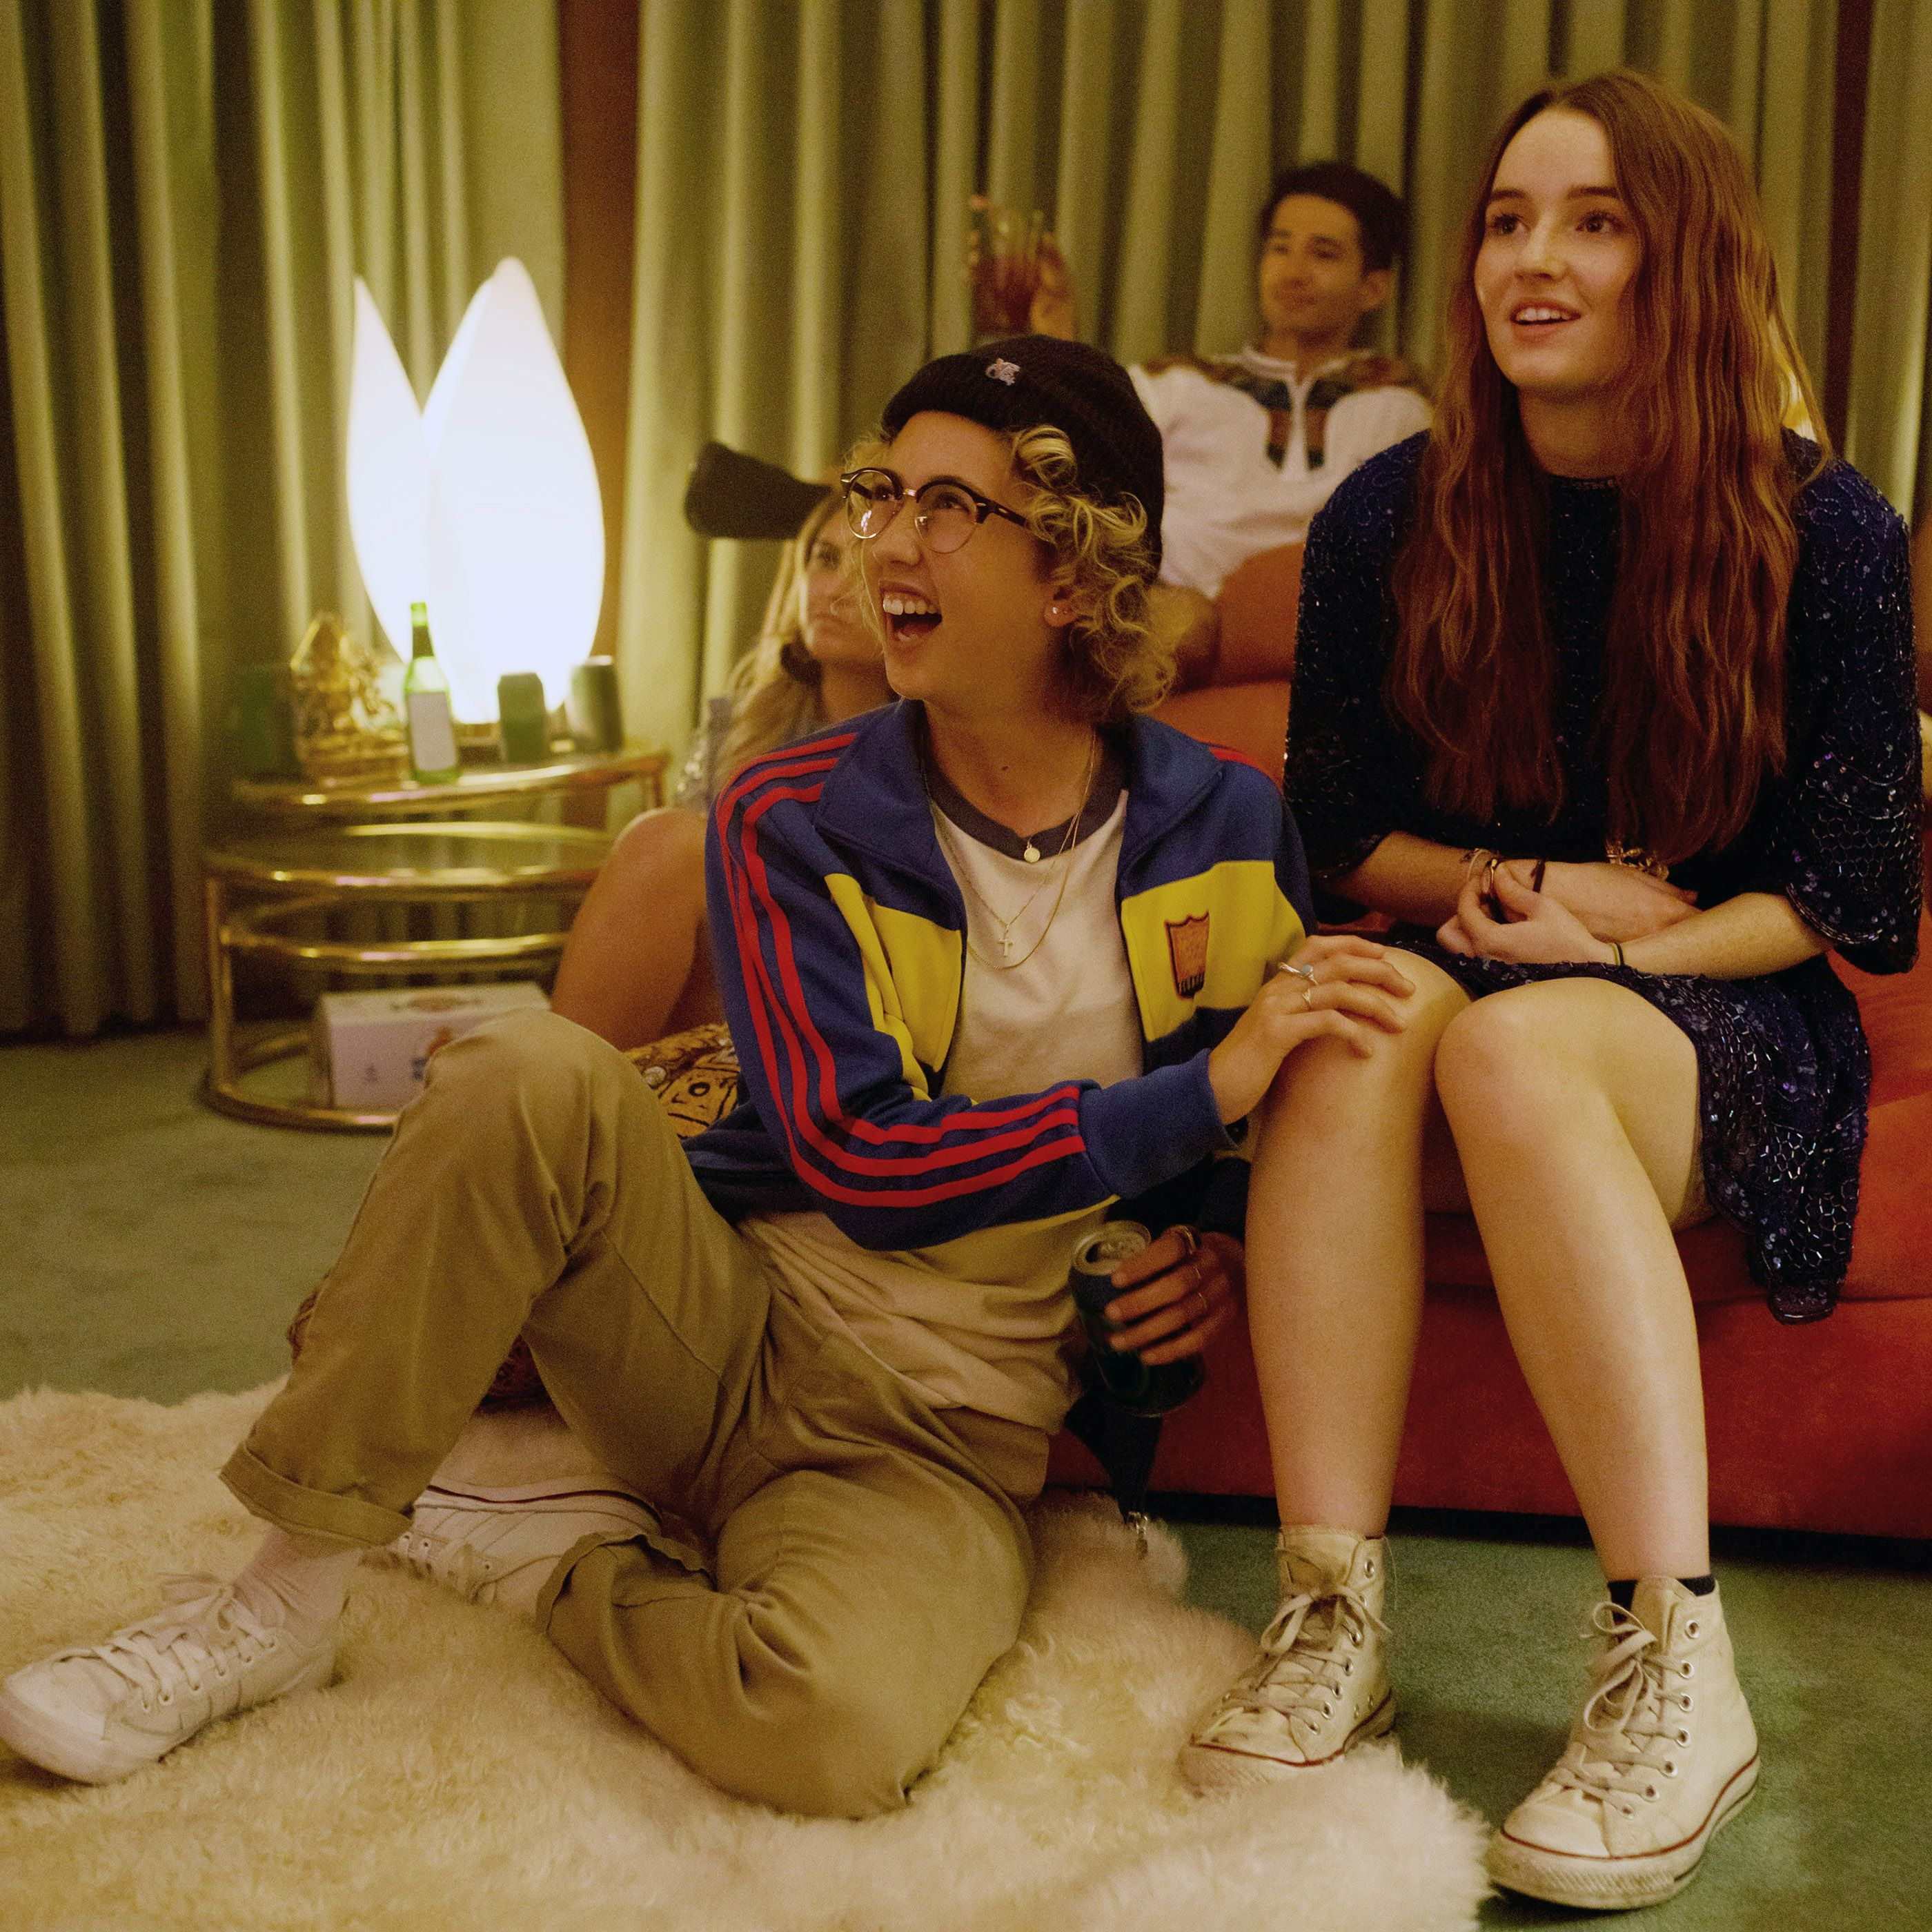 Booksmart's Ryan Is a Bisexual Icon